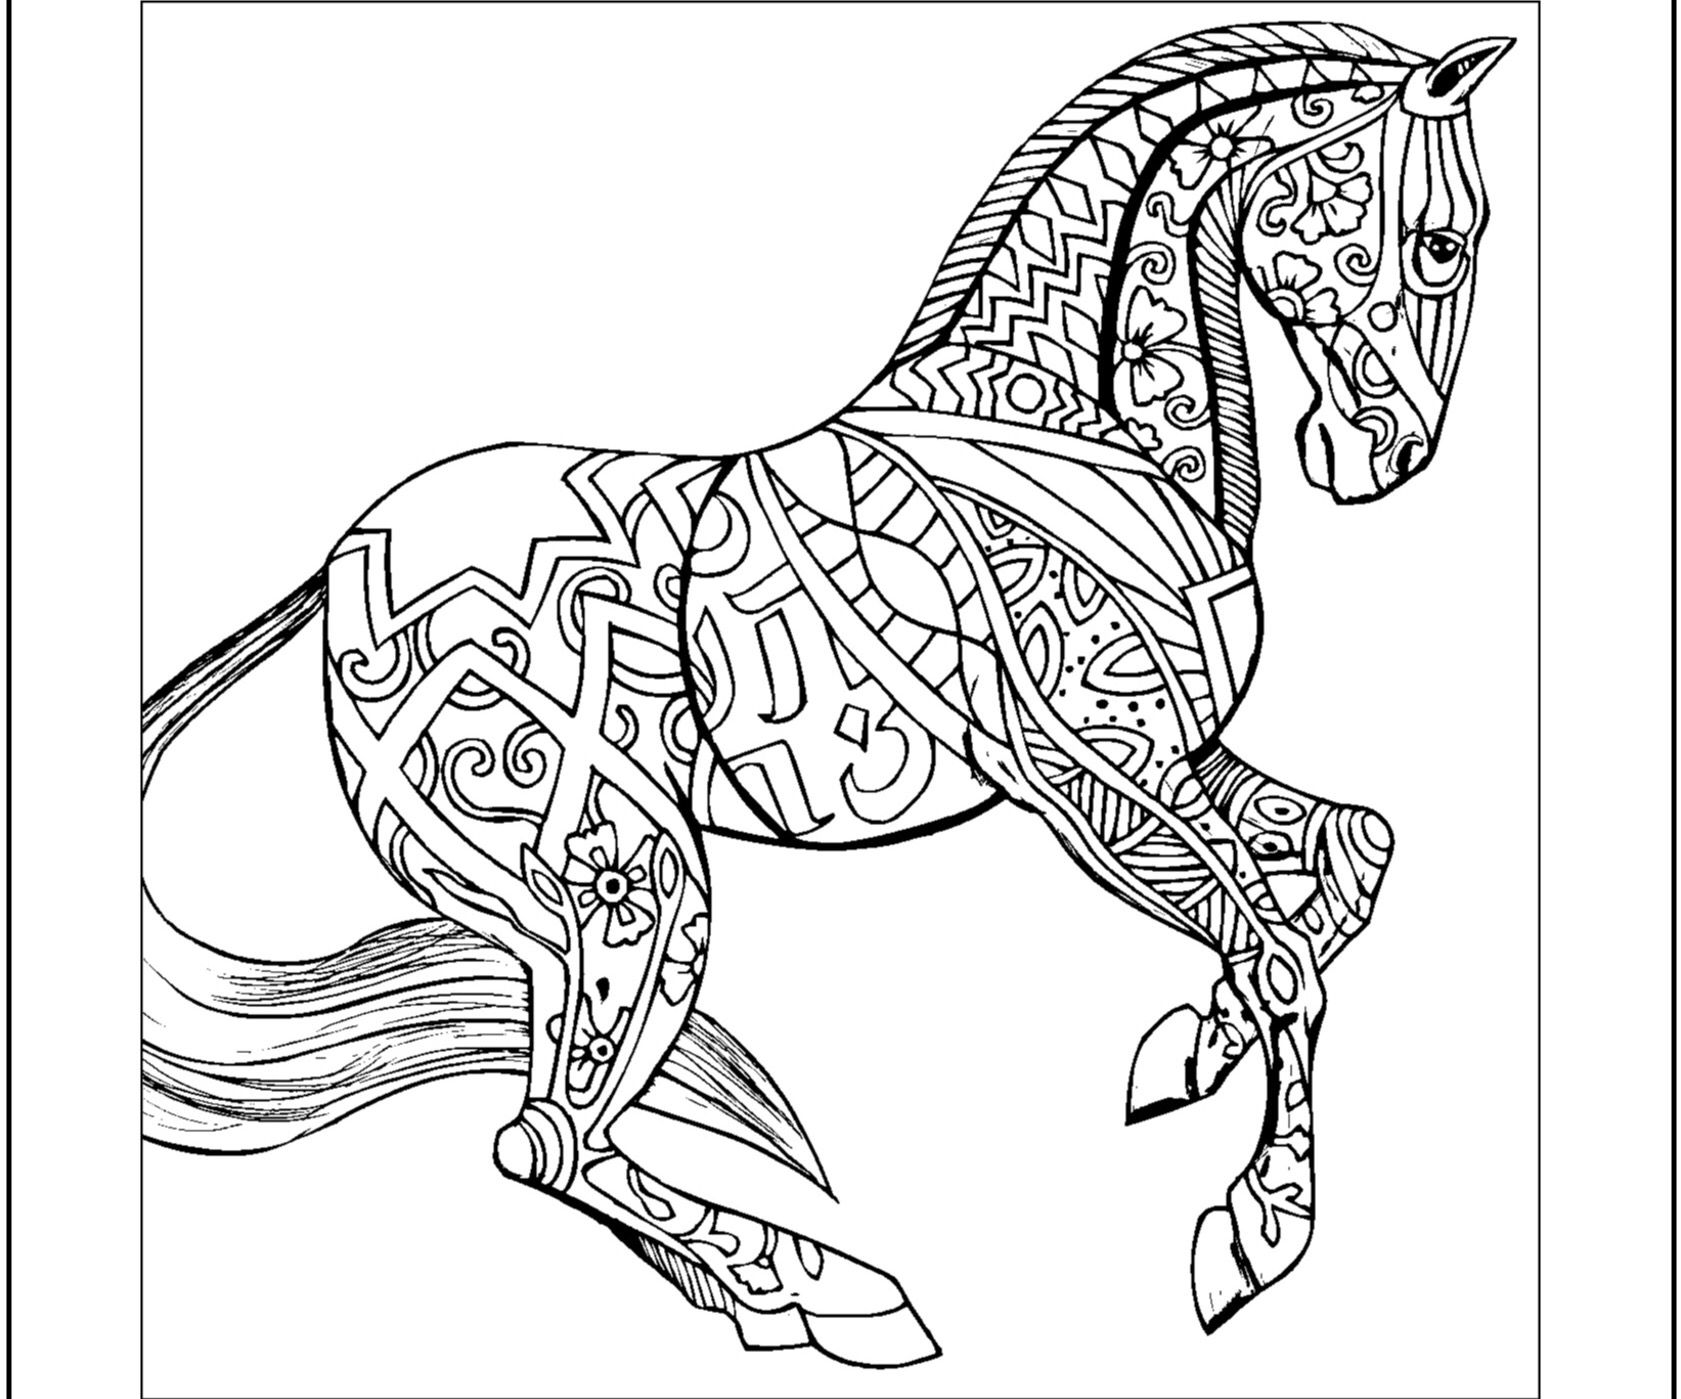 coloring book pages of horses | Hard horses coloring pages Animal coloring pages | Horse ...